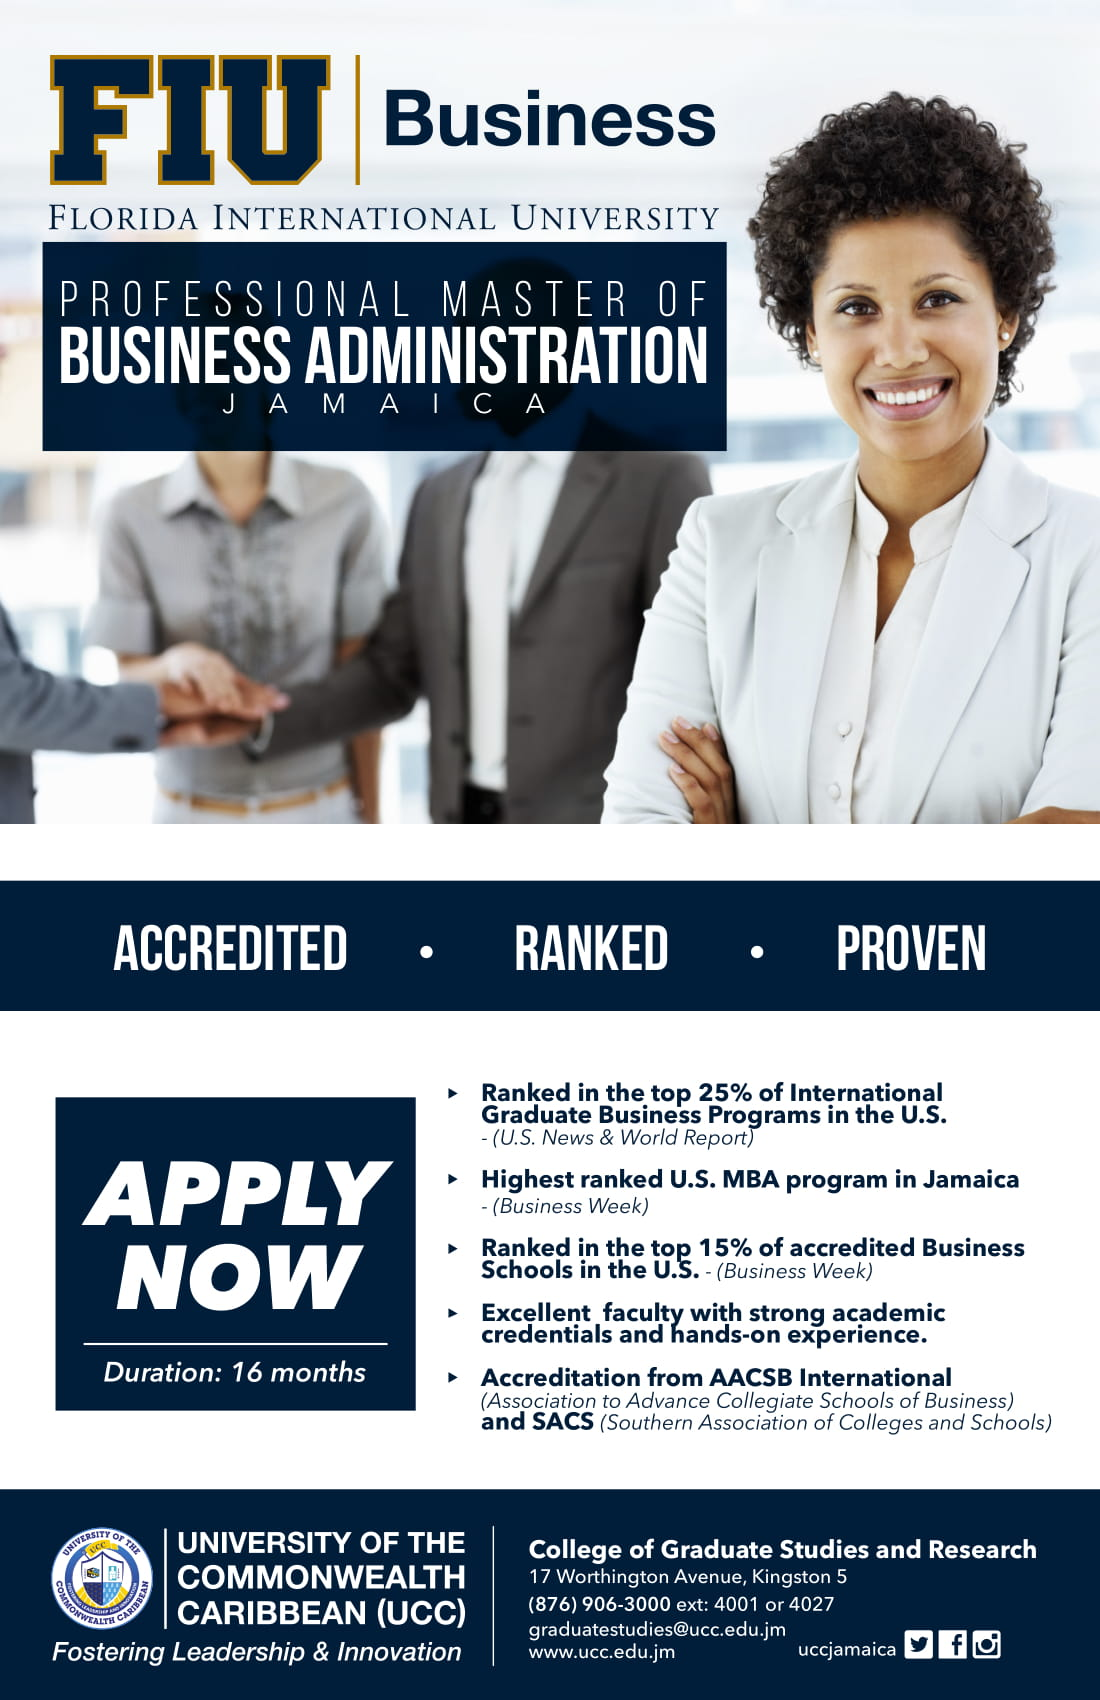 Professional Master of Business Administration (PMBA) | The